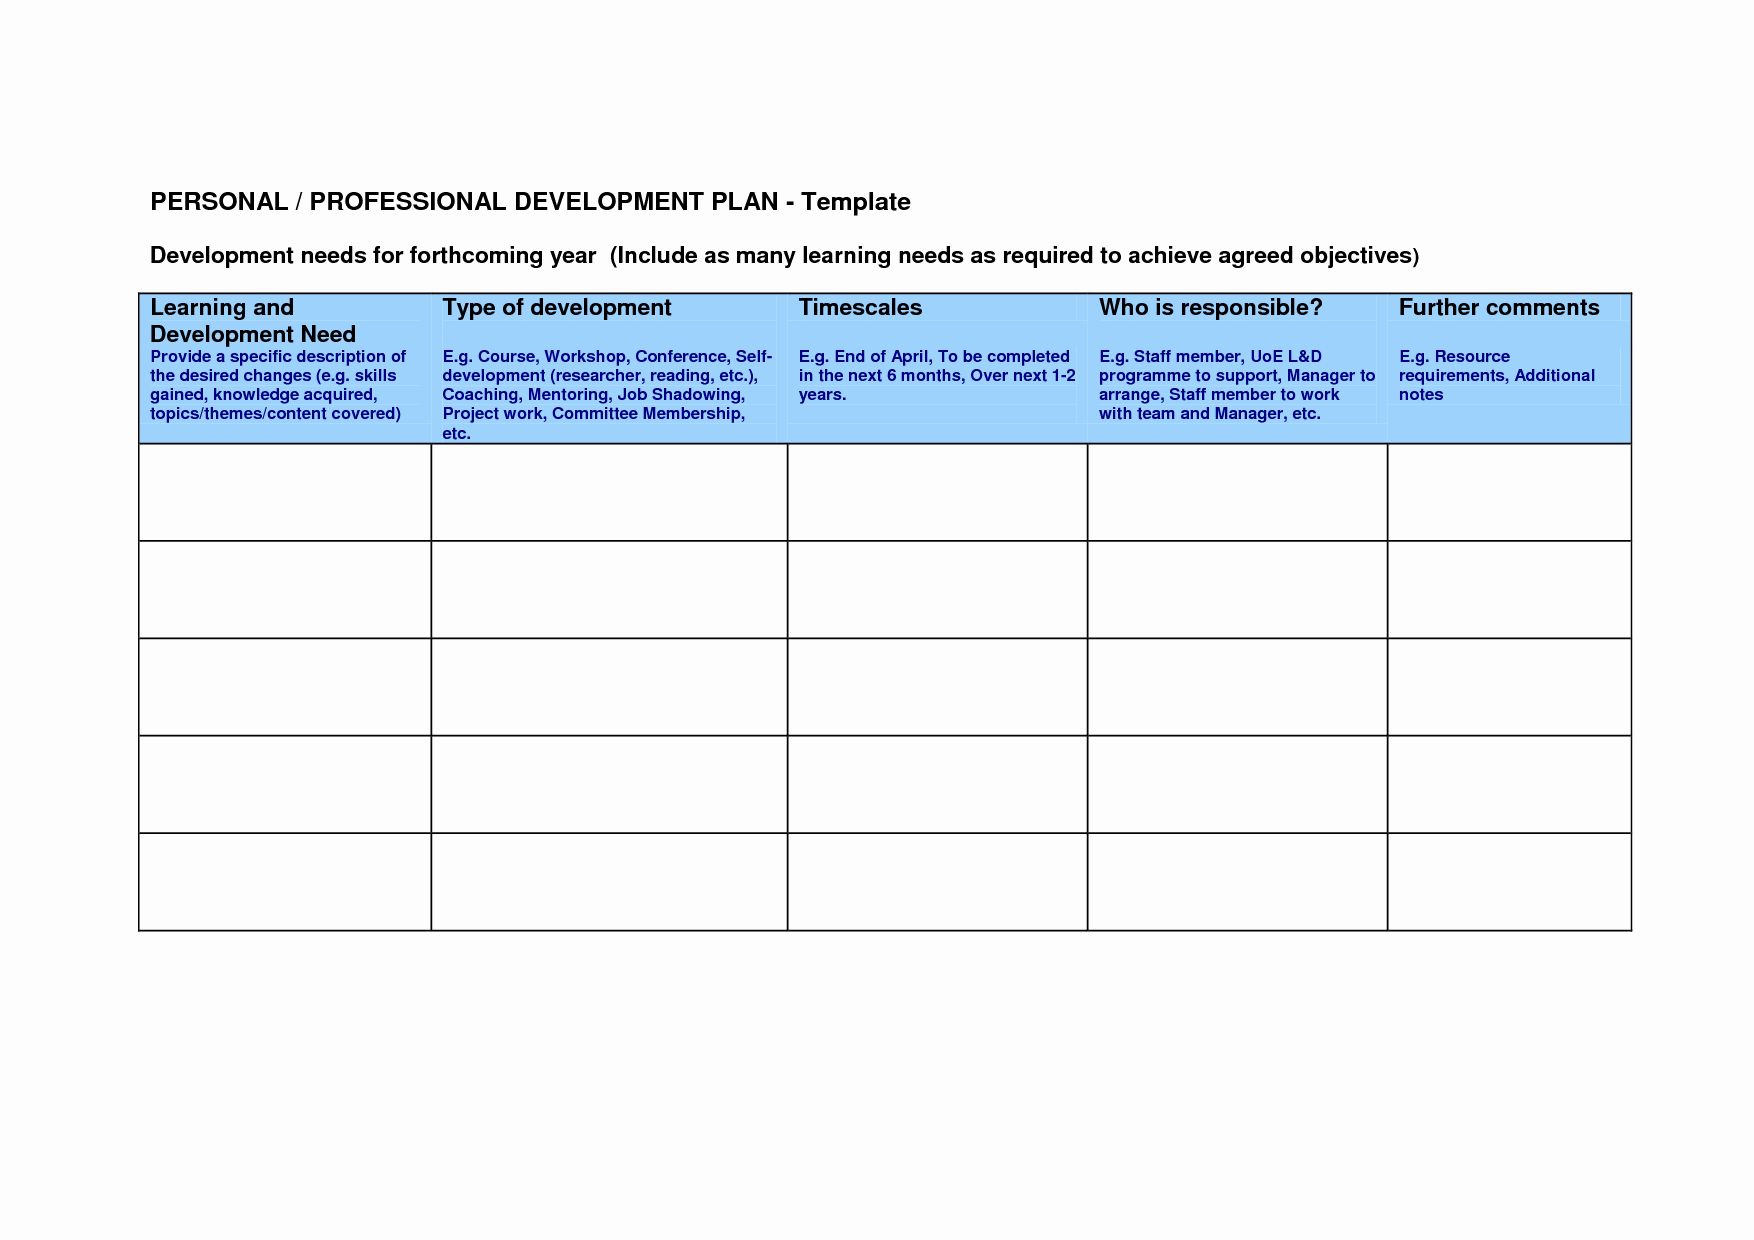 Development Action Plan Template Unique Professional Development Plan Template